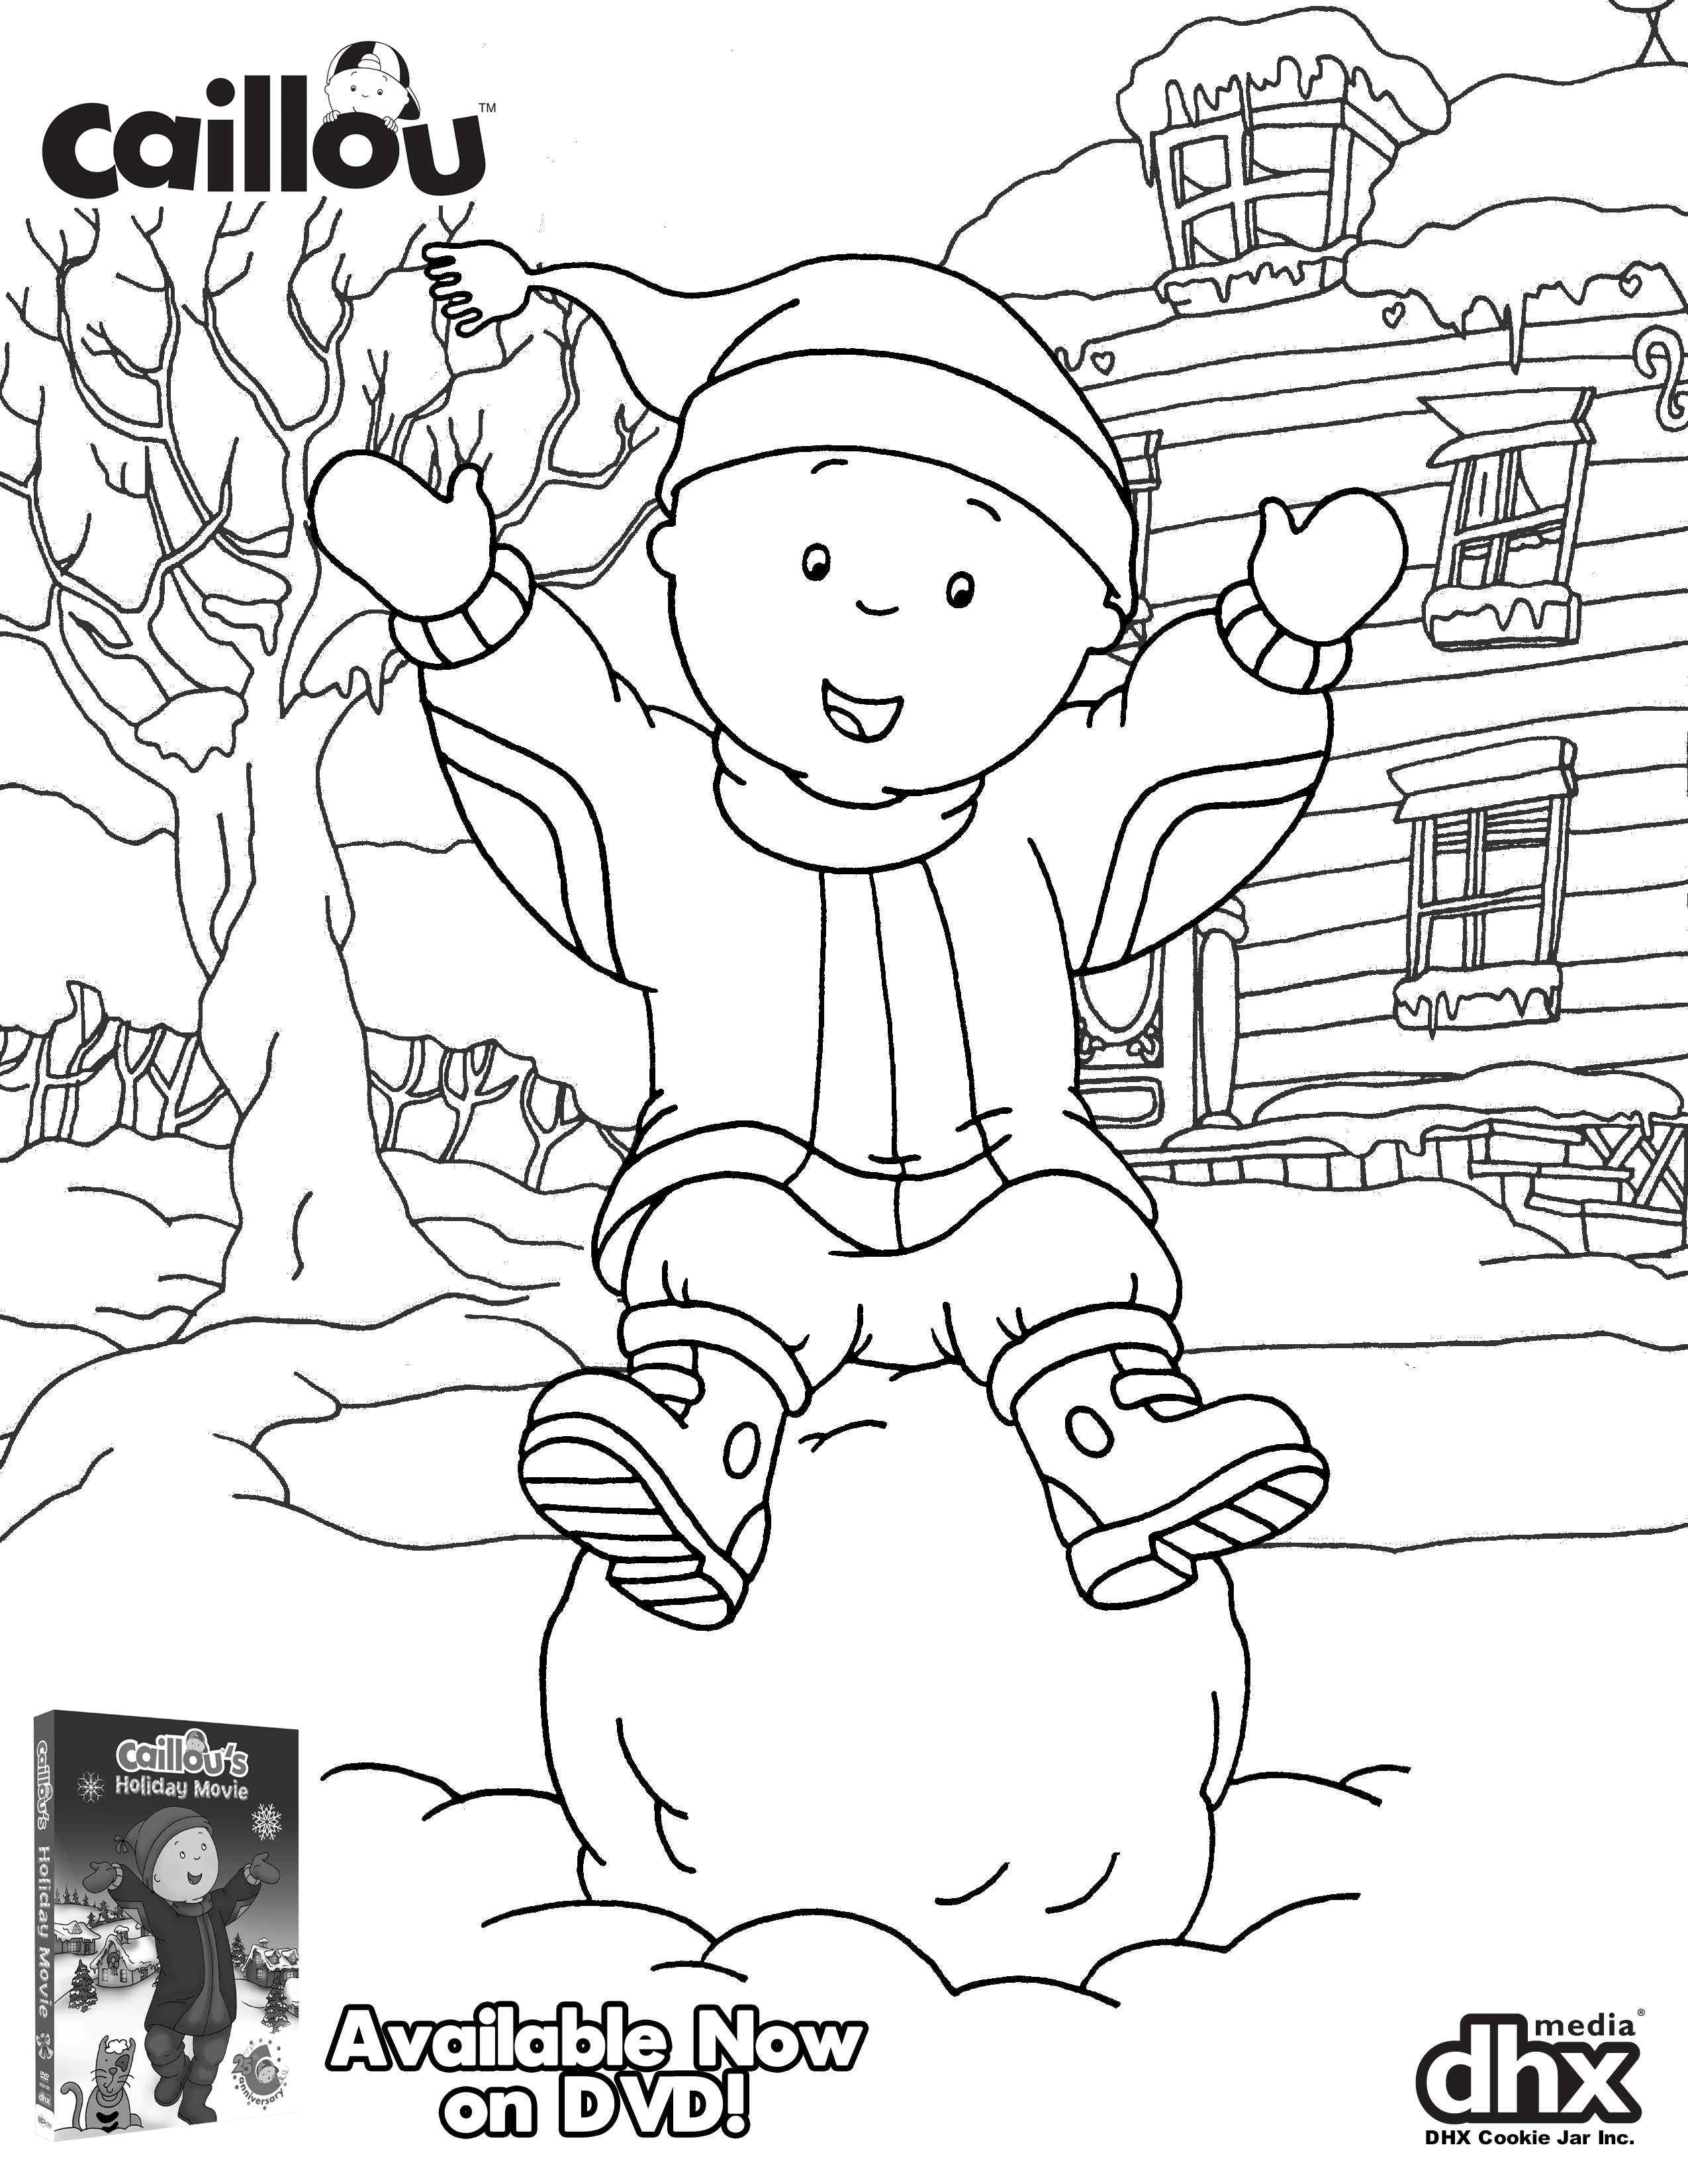 We Re Celebrating The Holidays Early With This Adorable Coloring Sheet And Caillou S Holiday